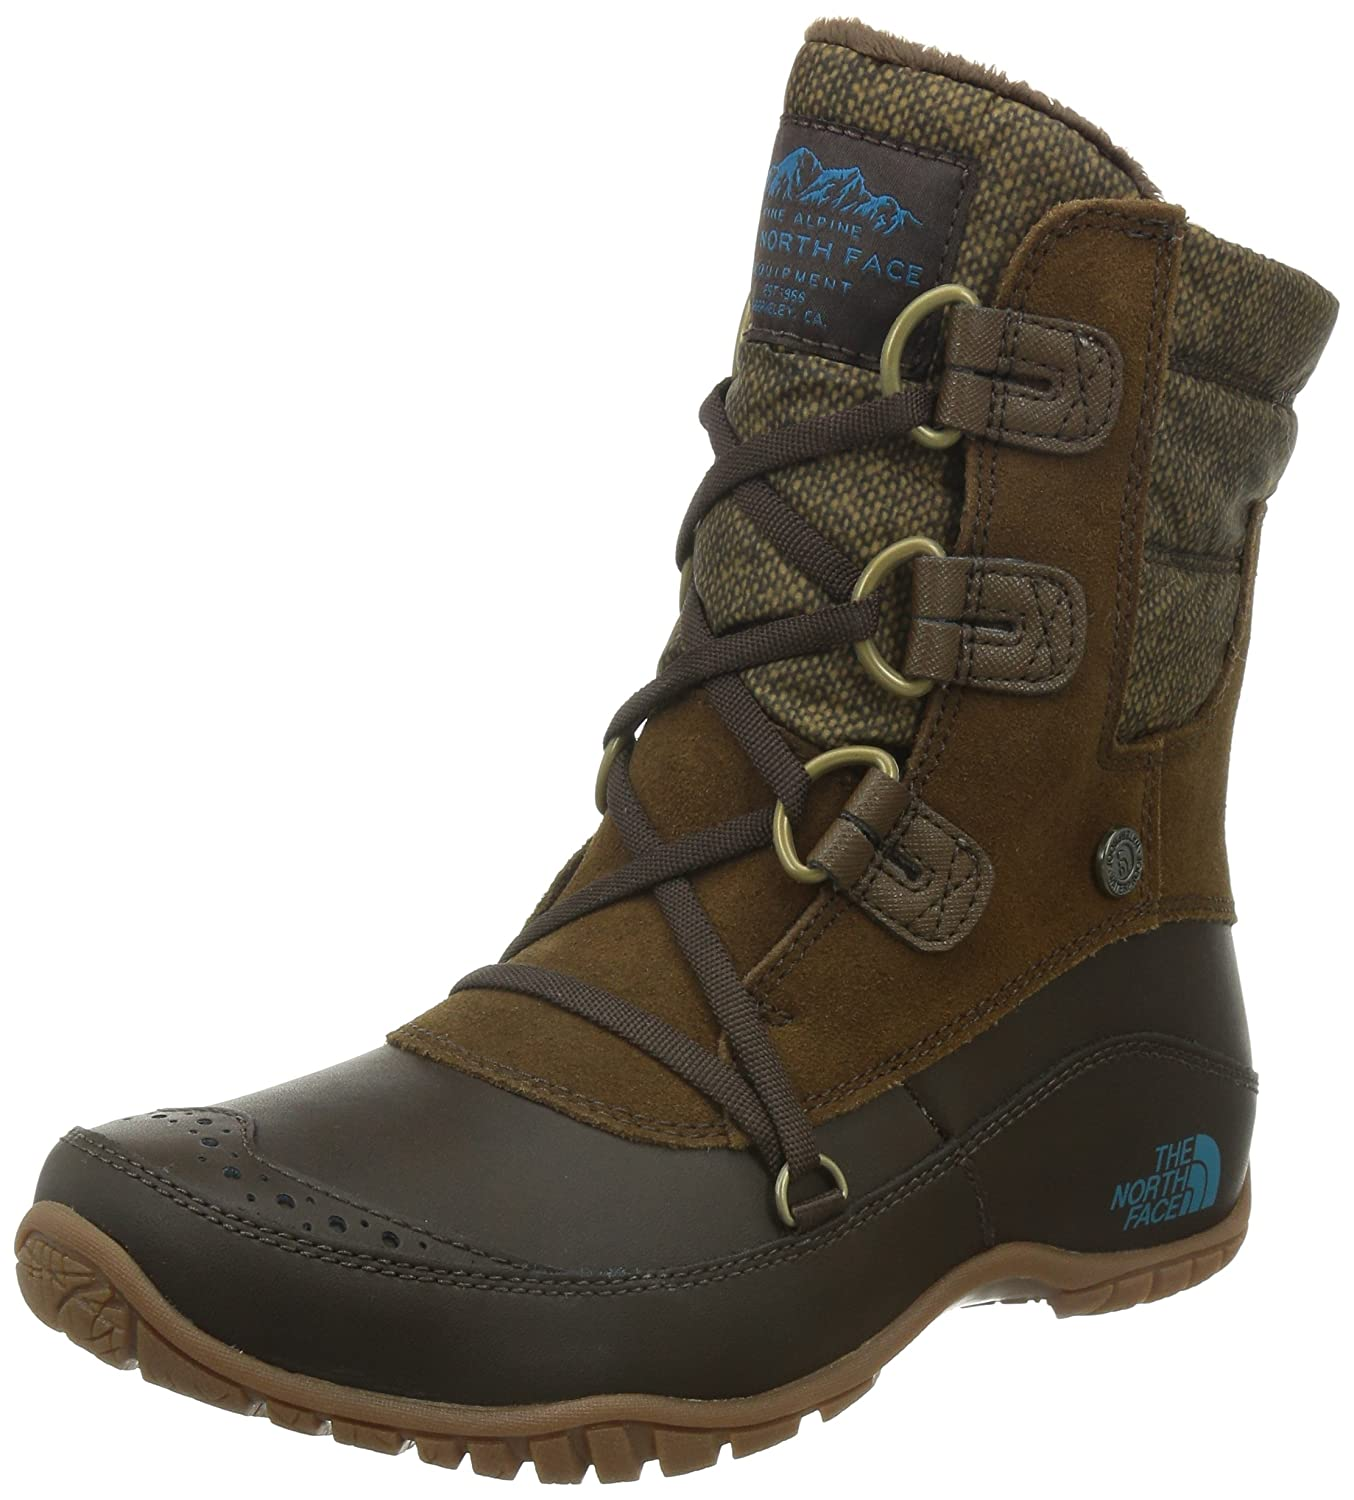 The North Face Nuptse Purna Shorty Boot Women's B00RW5NJBS 10.5 B(M) US|Desert Palm Brown/Storm Blue (Prior Season)